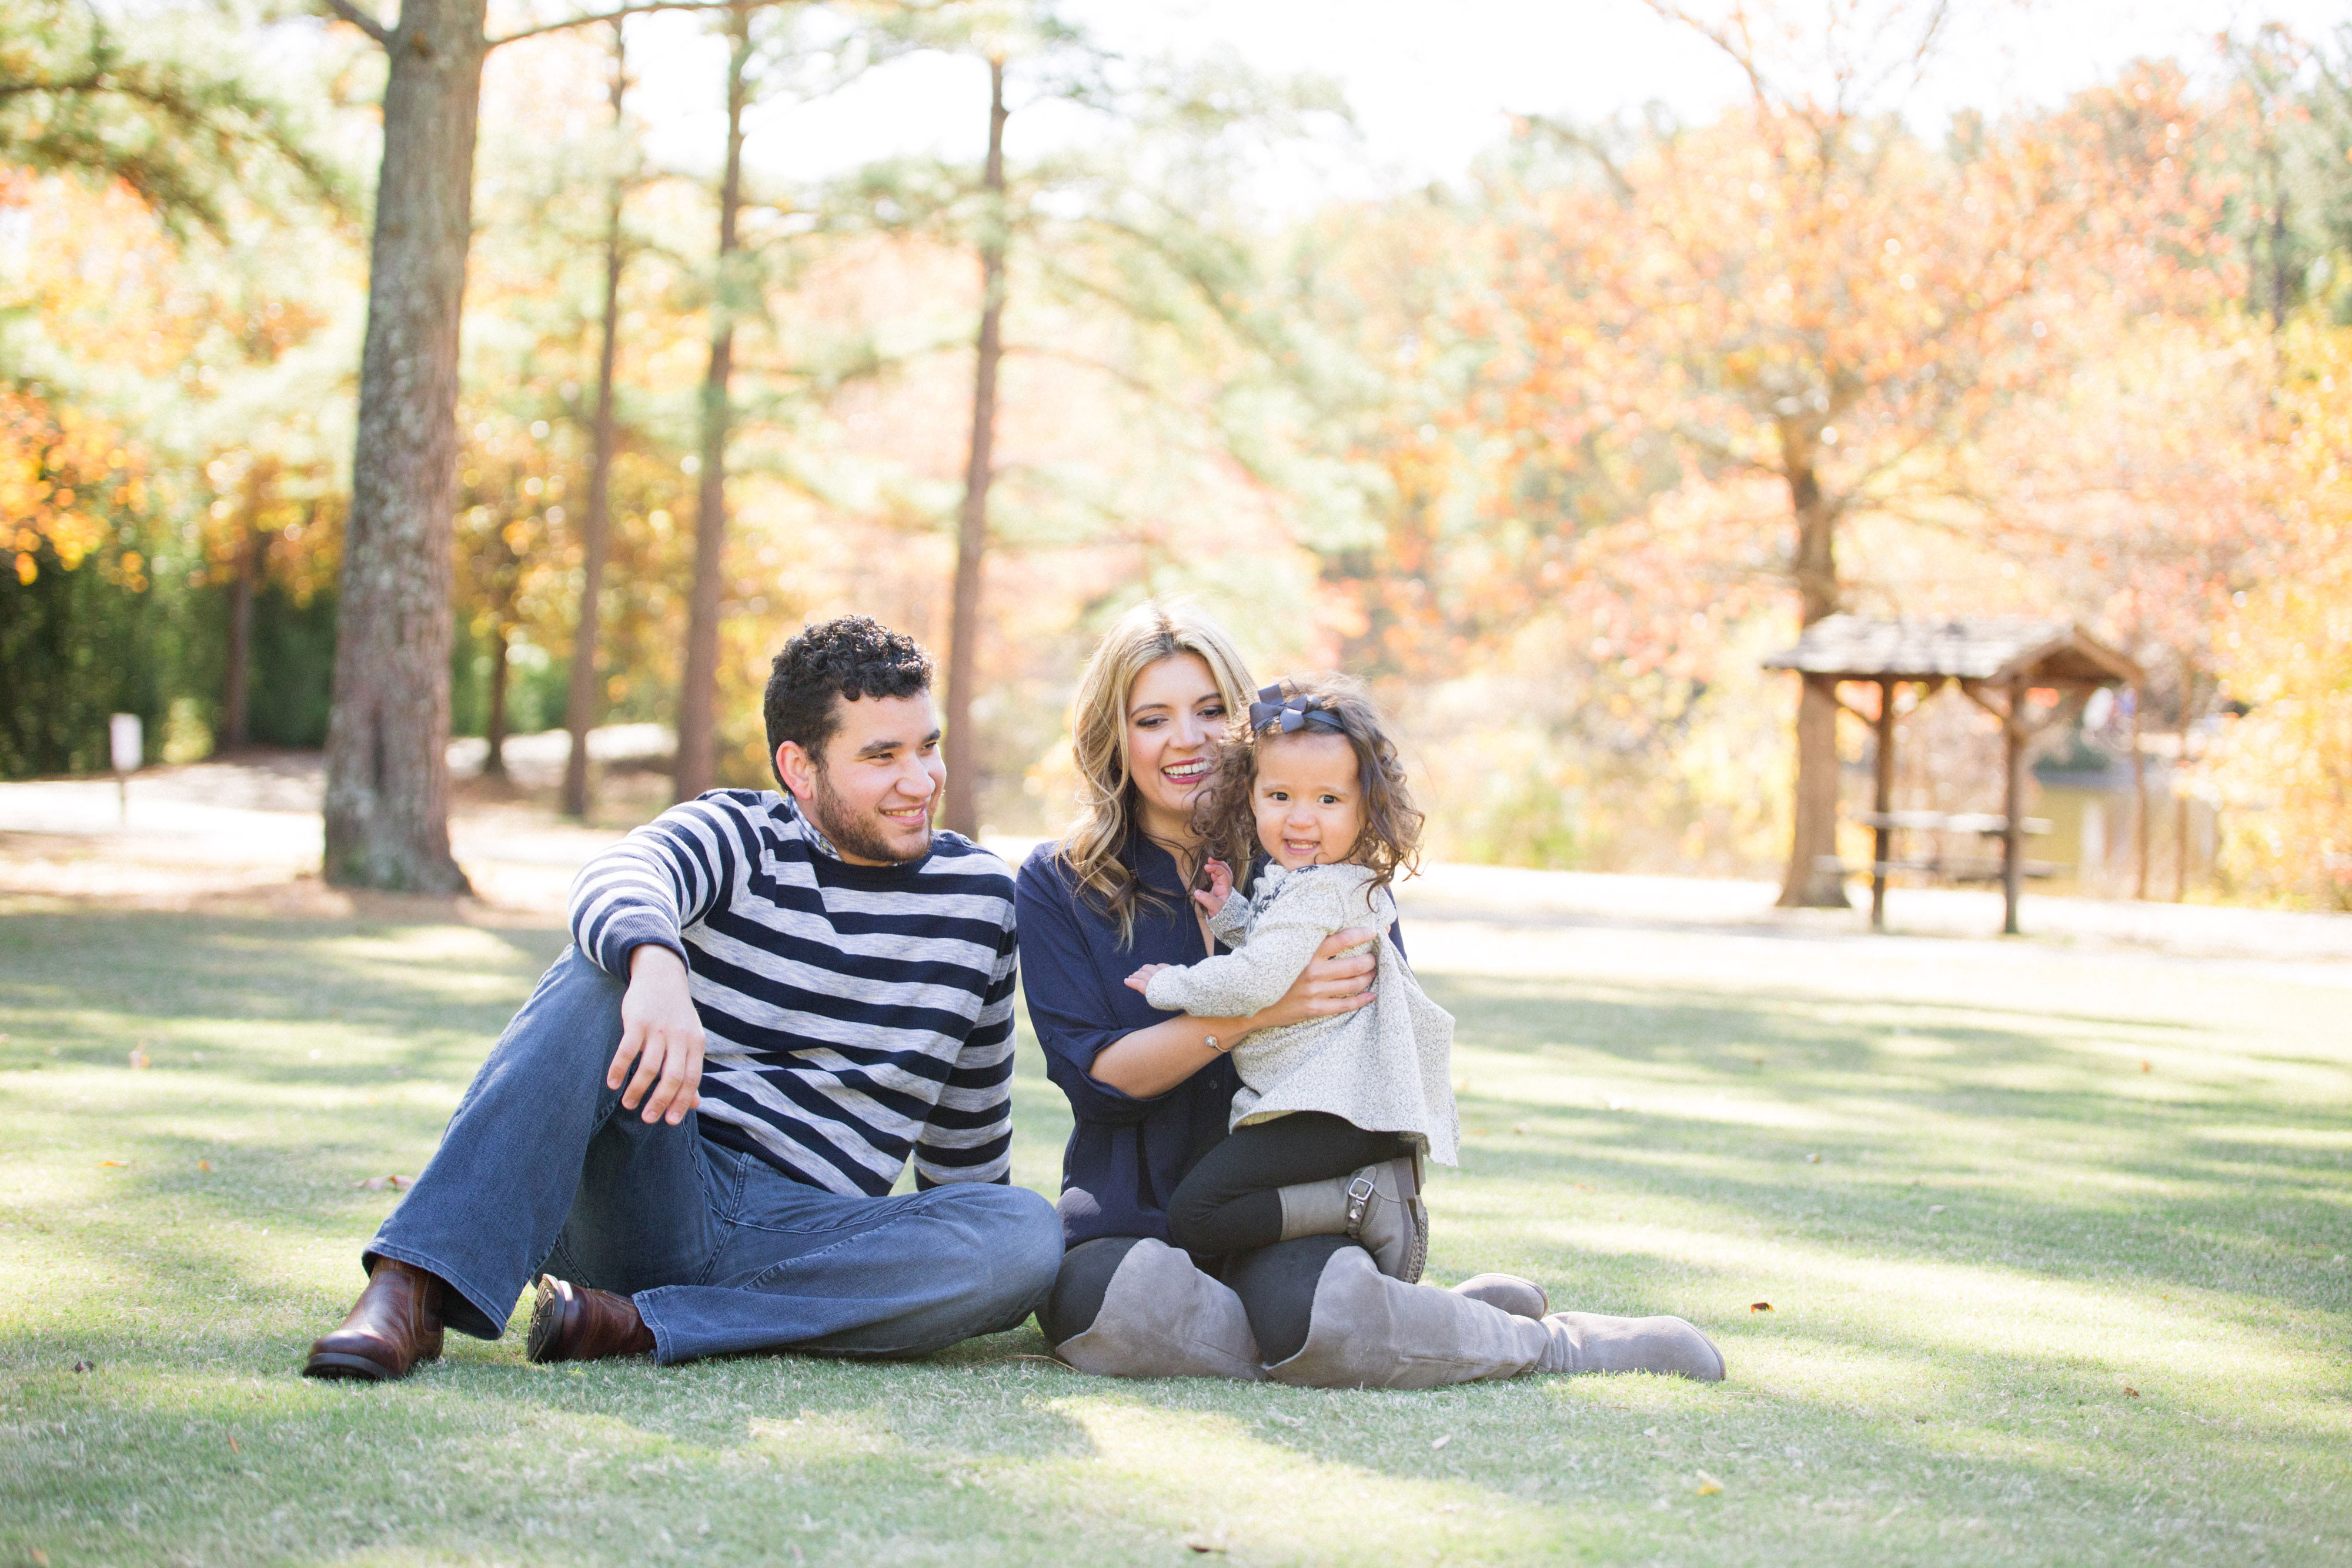 what to wear for family photos - family photo outfit tips | www.bylaurenm.com